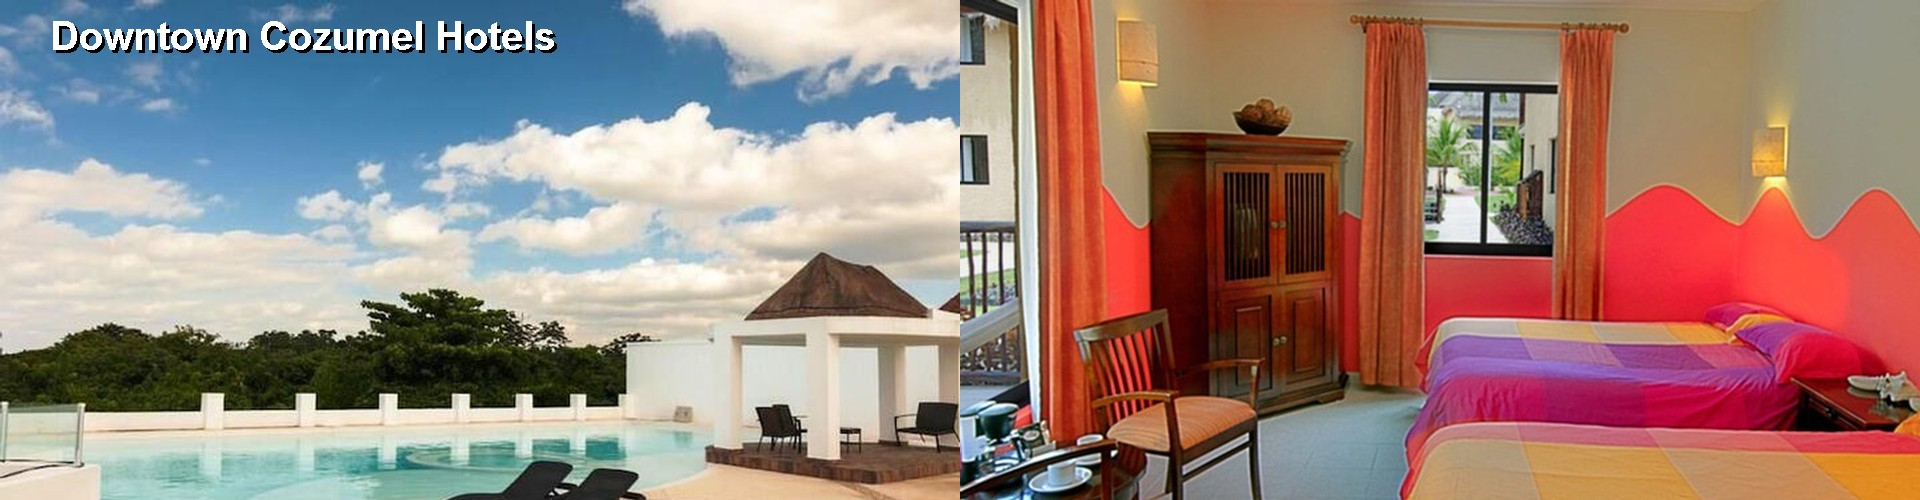 5 Best Hotels near Downtown Cozumel